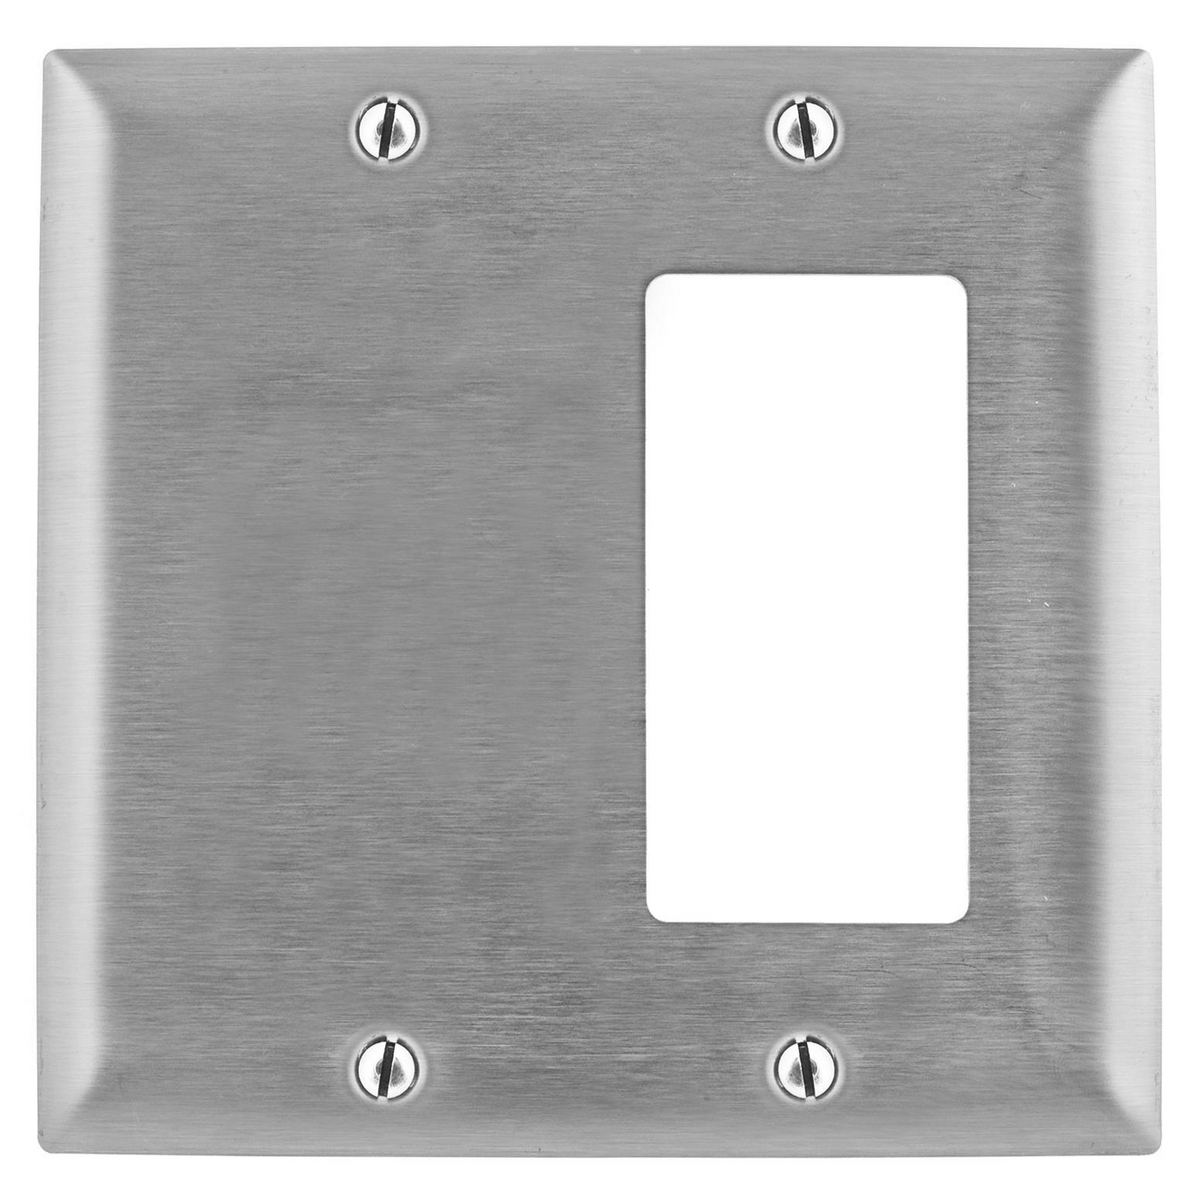 Hubbell SS1426 2-Gang Stainless Steel 1-Decorator Switch 1-Blank Strap Mount Combination Wallplate